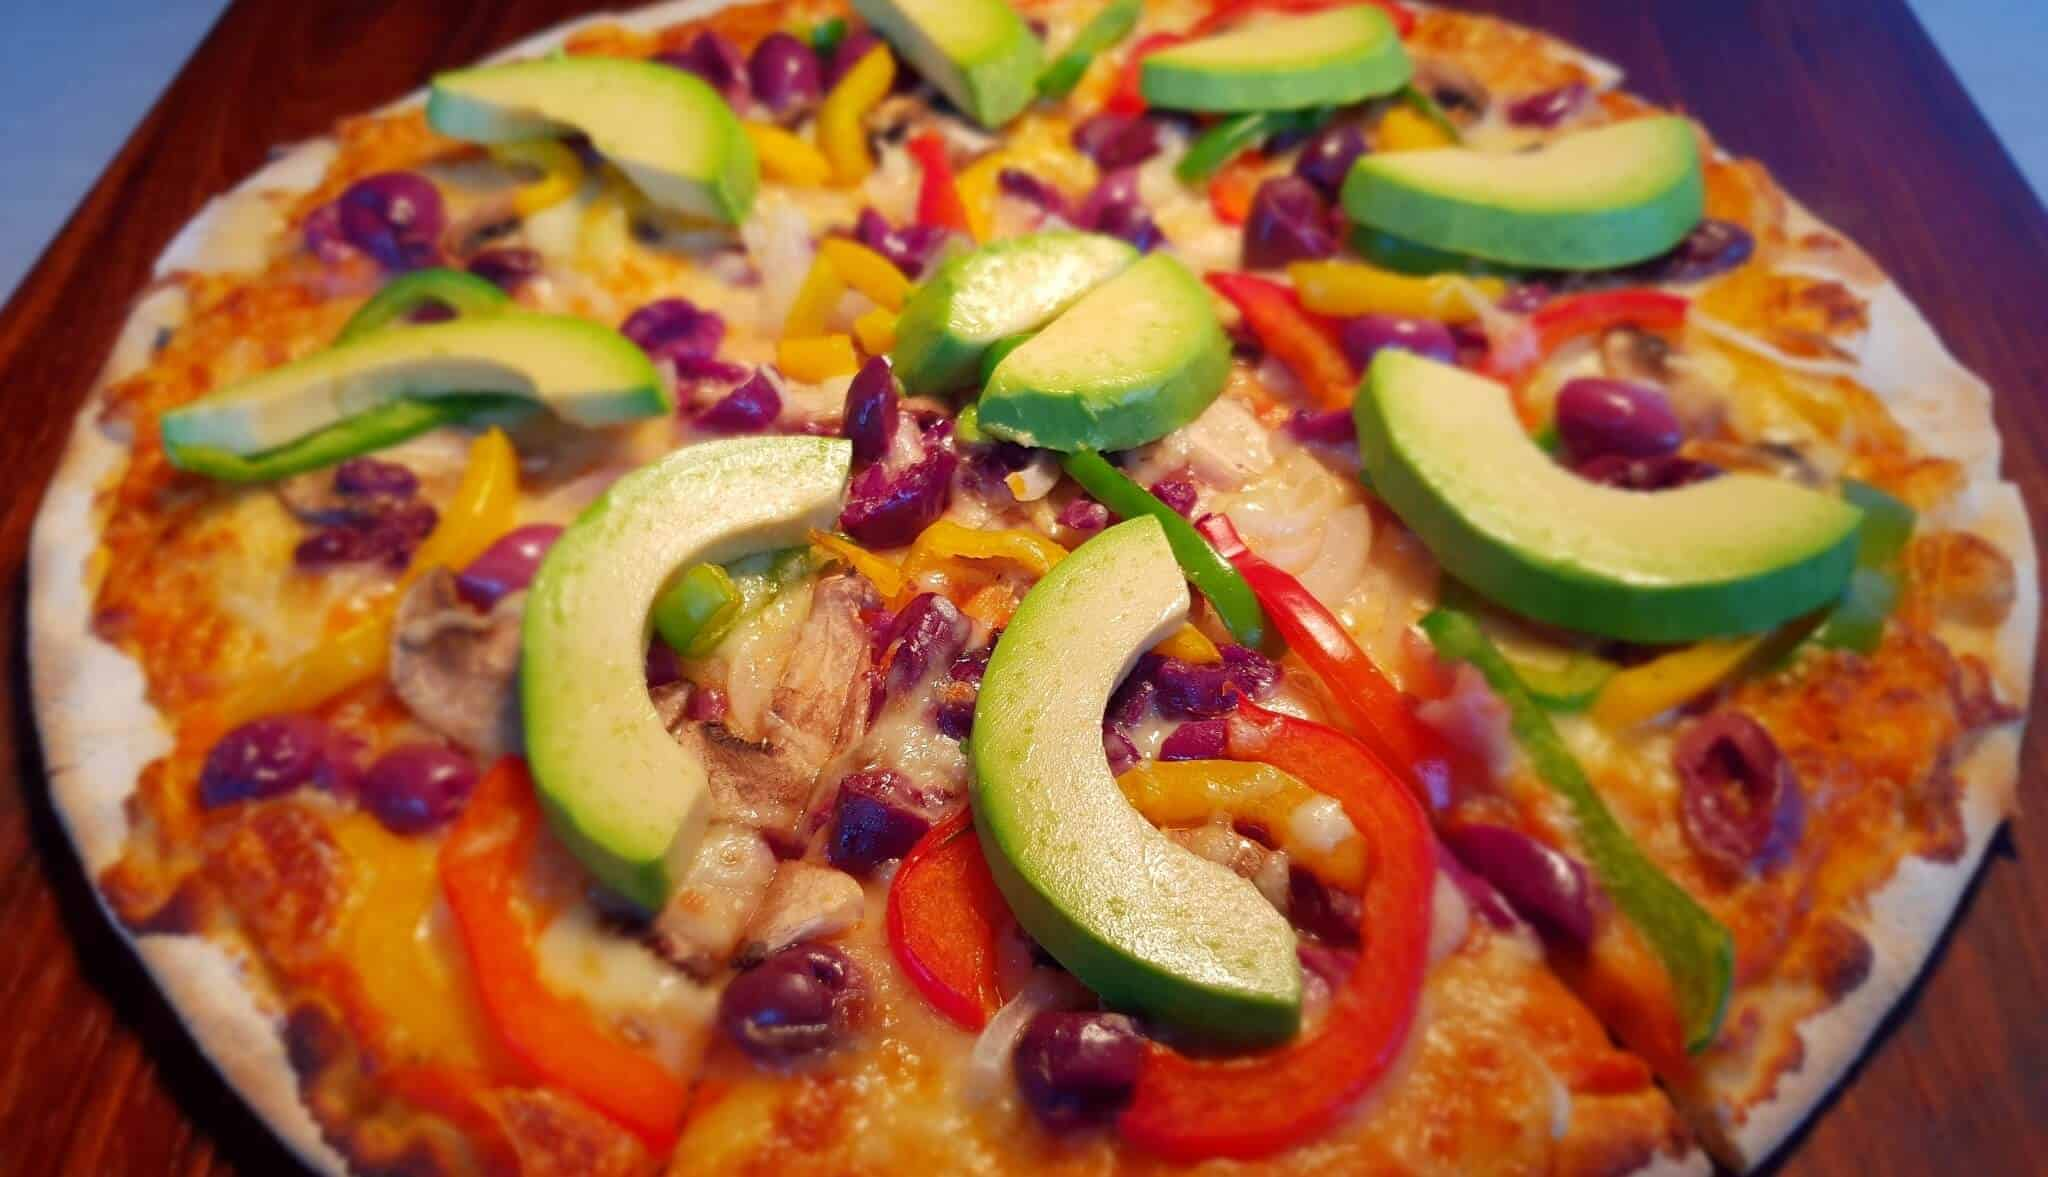 Arebbusch Travel Lodge Pizzeria & Grill | Pizzeria & Grill in Windhoek, Namibia | Arebbusch Vegetarian Pizza